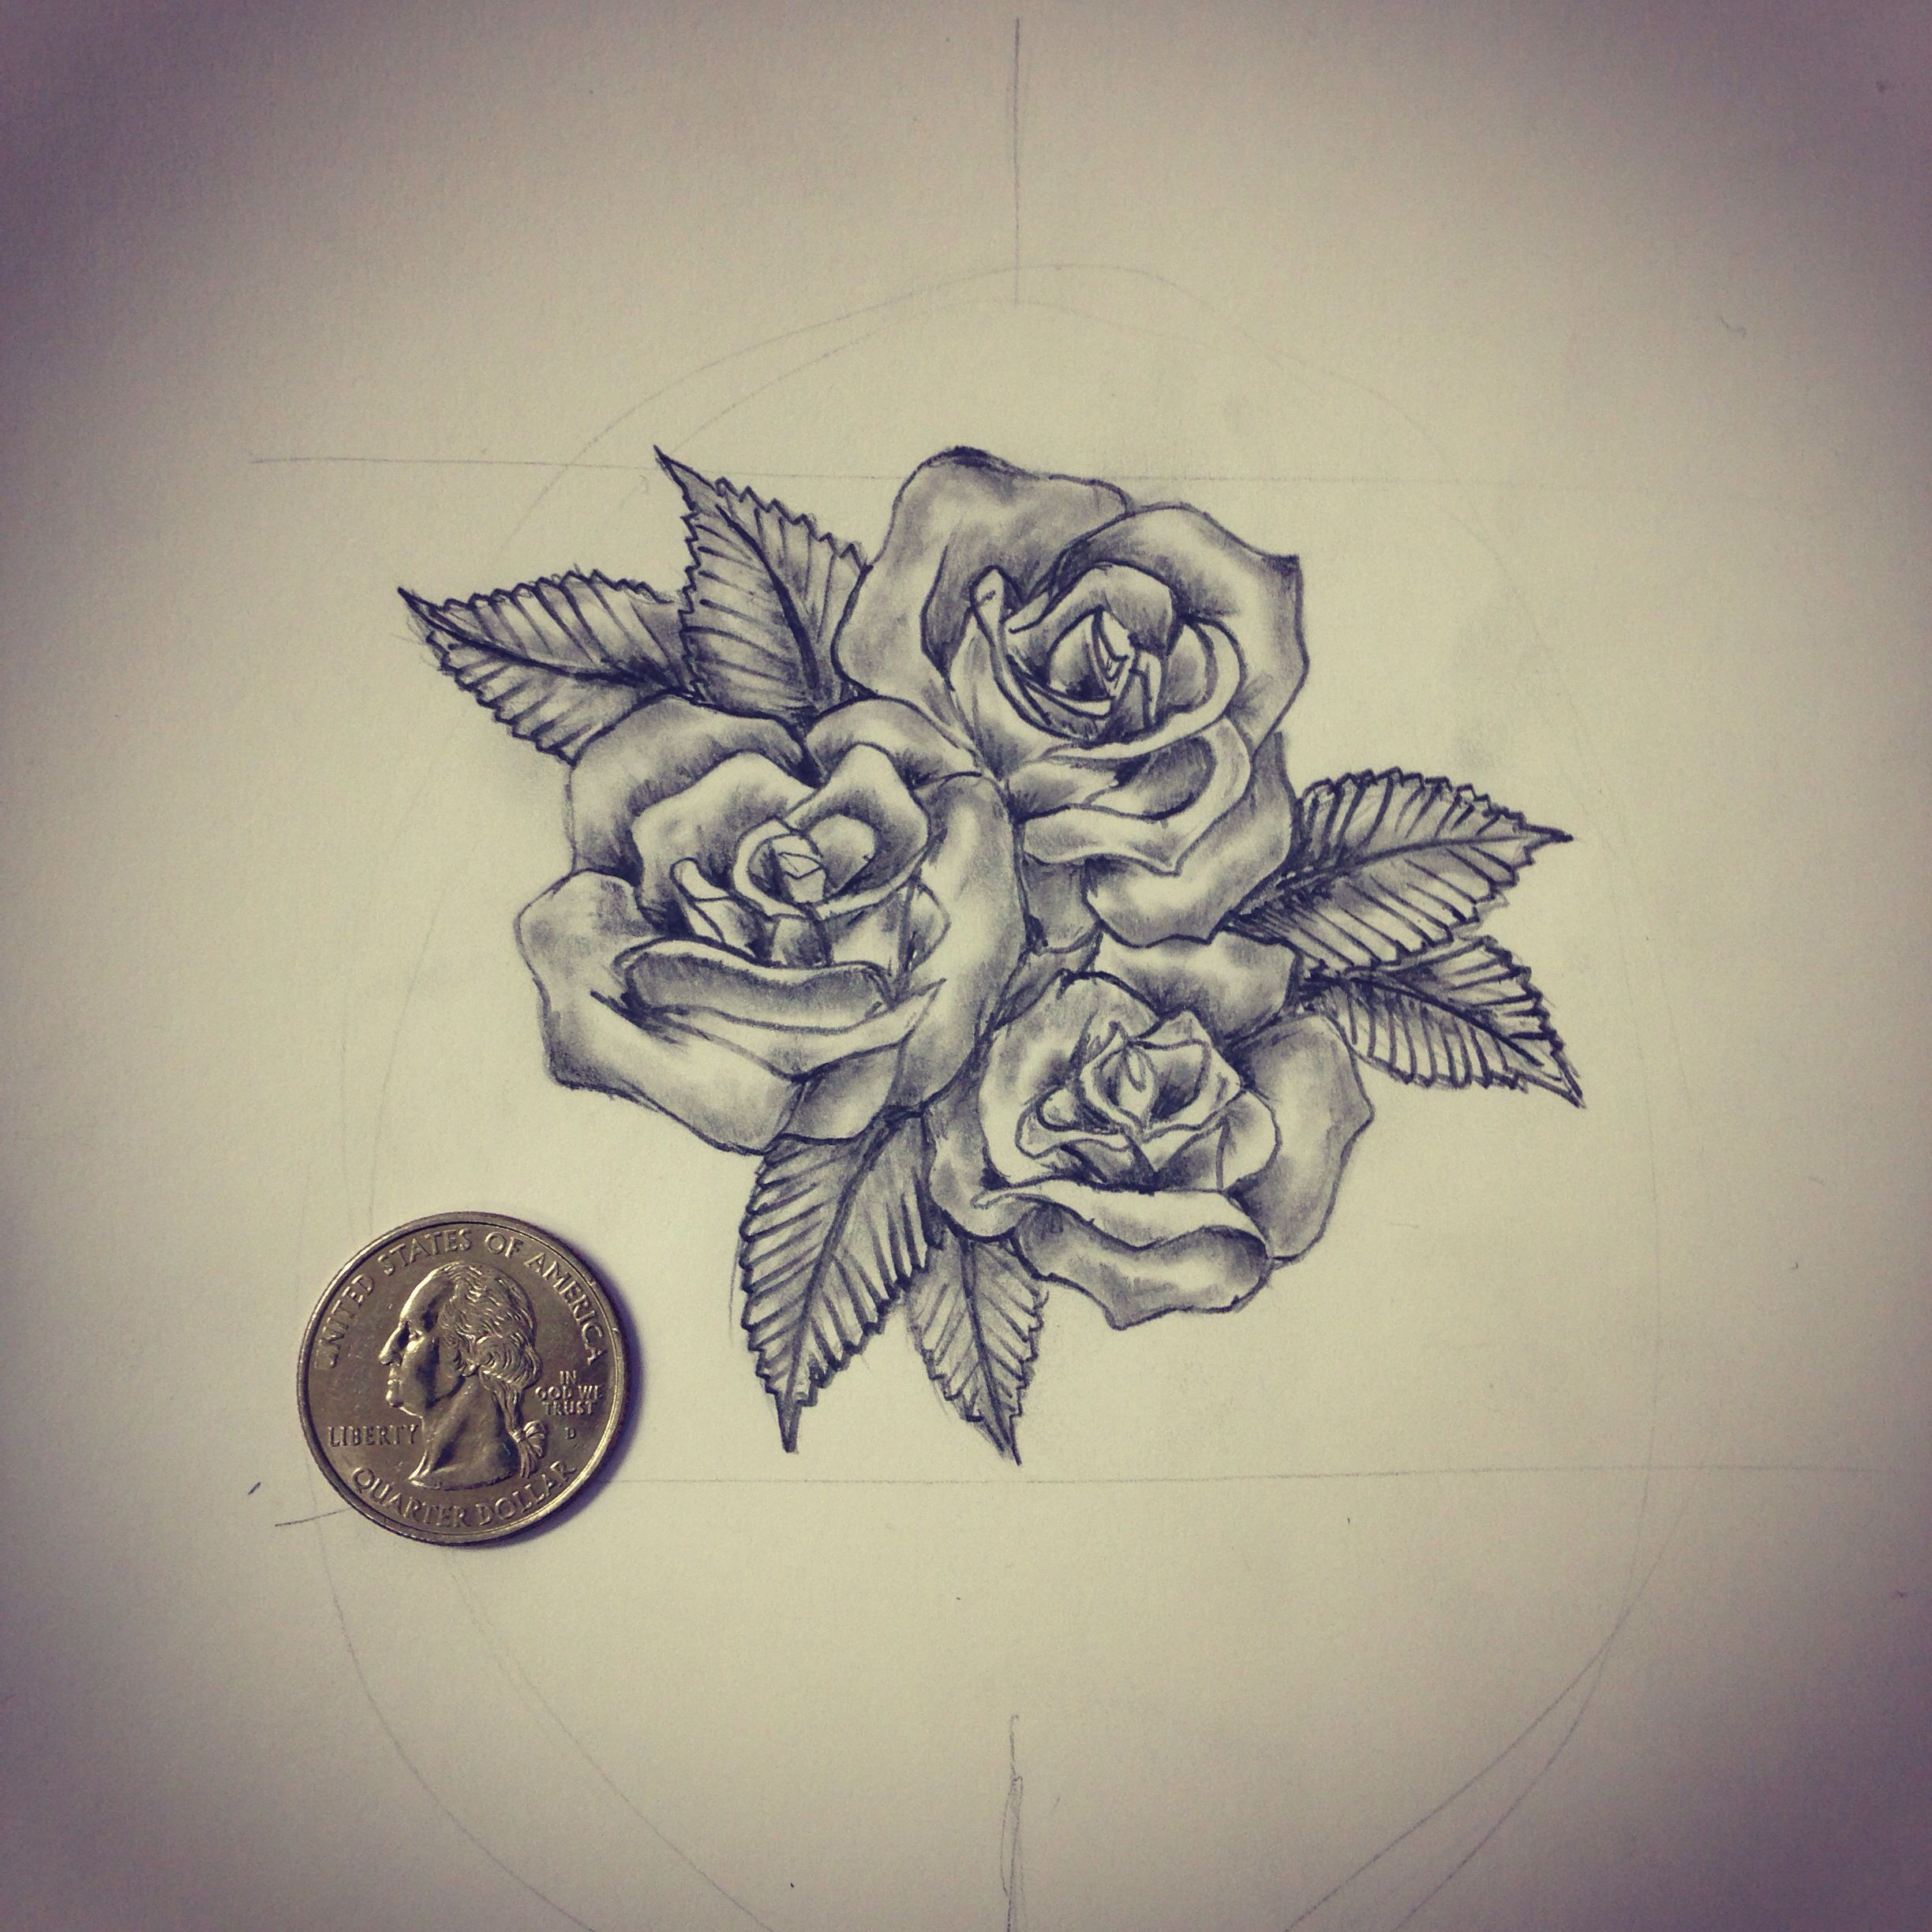 Uncategorized Small Rose Drawing small roses tattoo sketch drawing ideas by ranz ranz